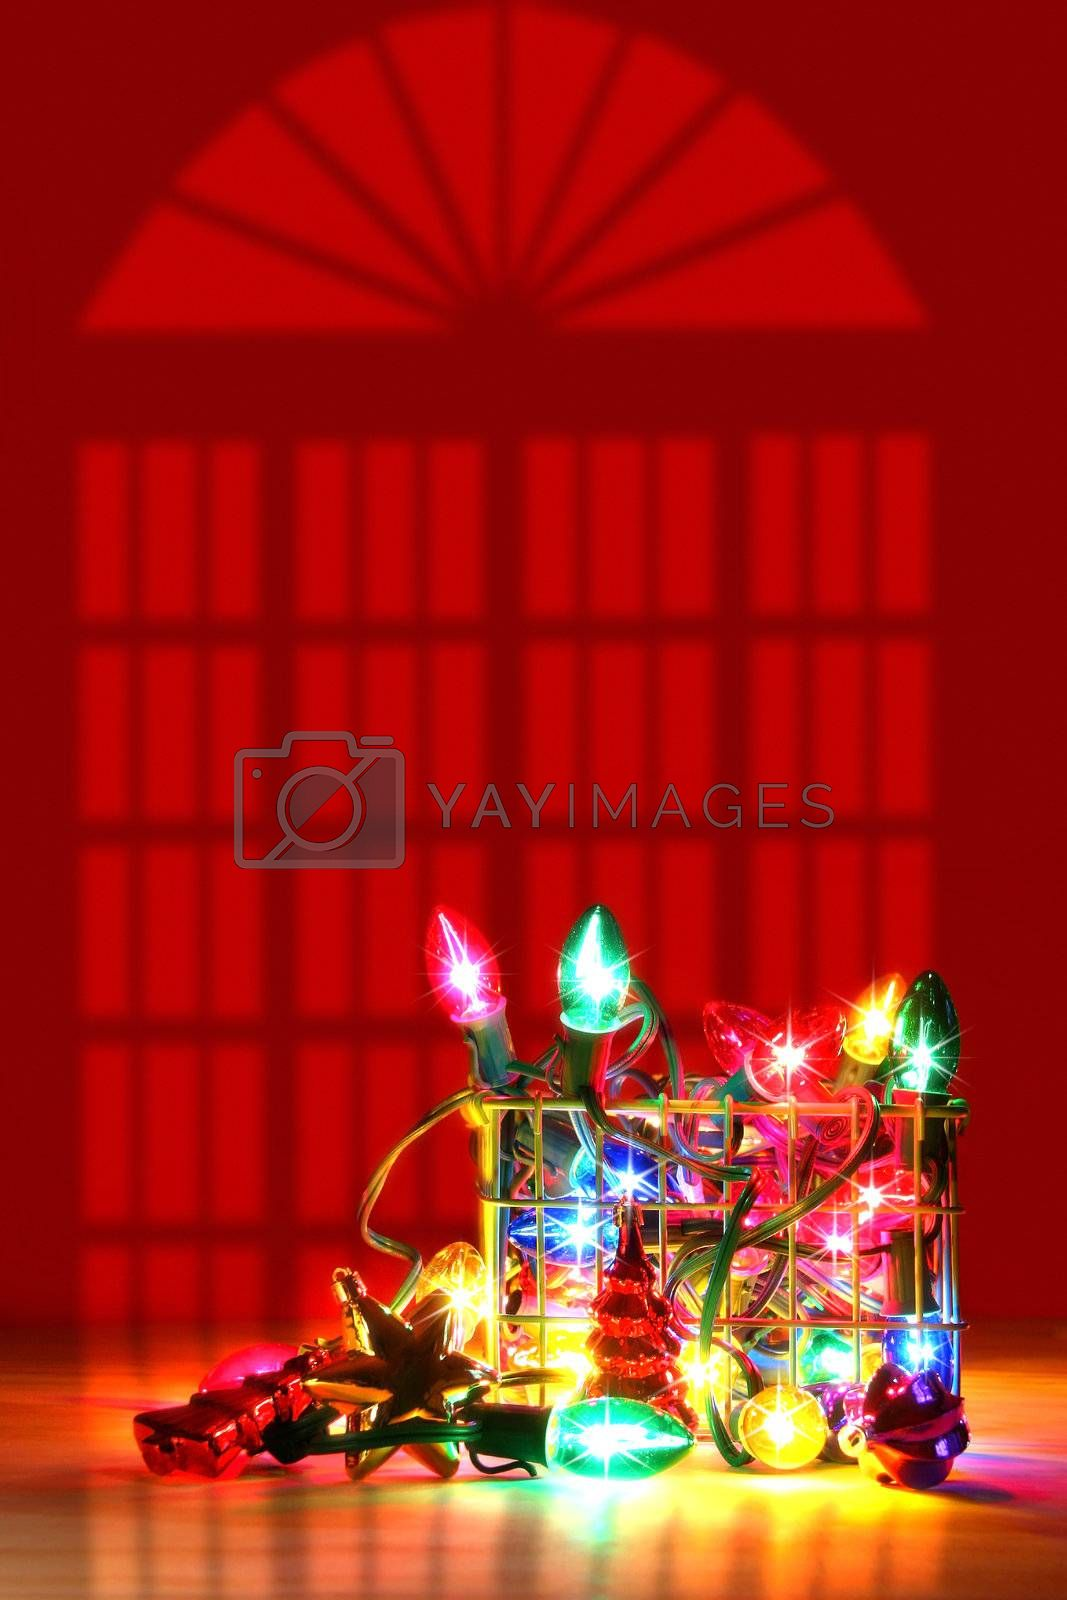 Metal basket filled with lights for decorating by Sandralise